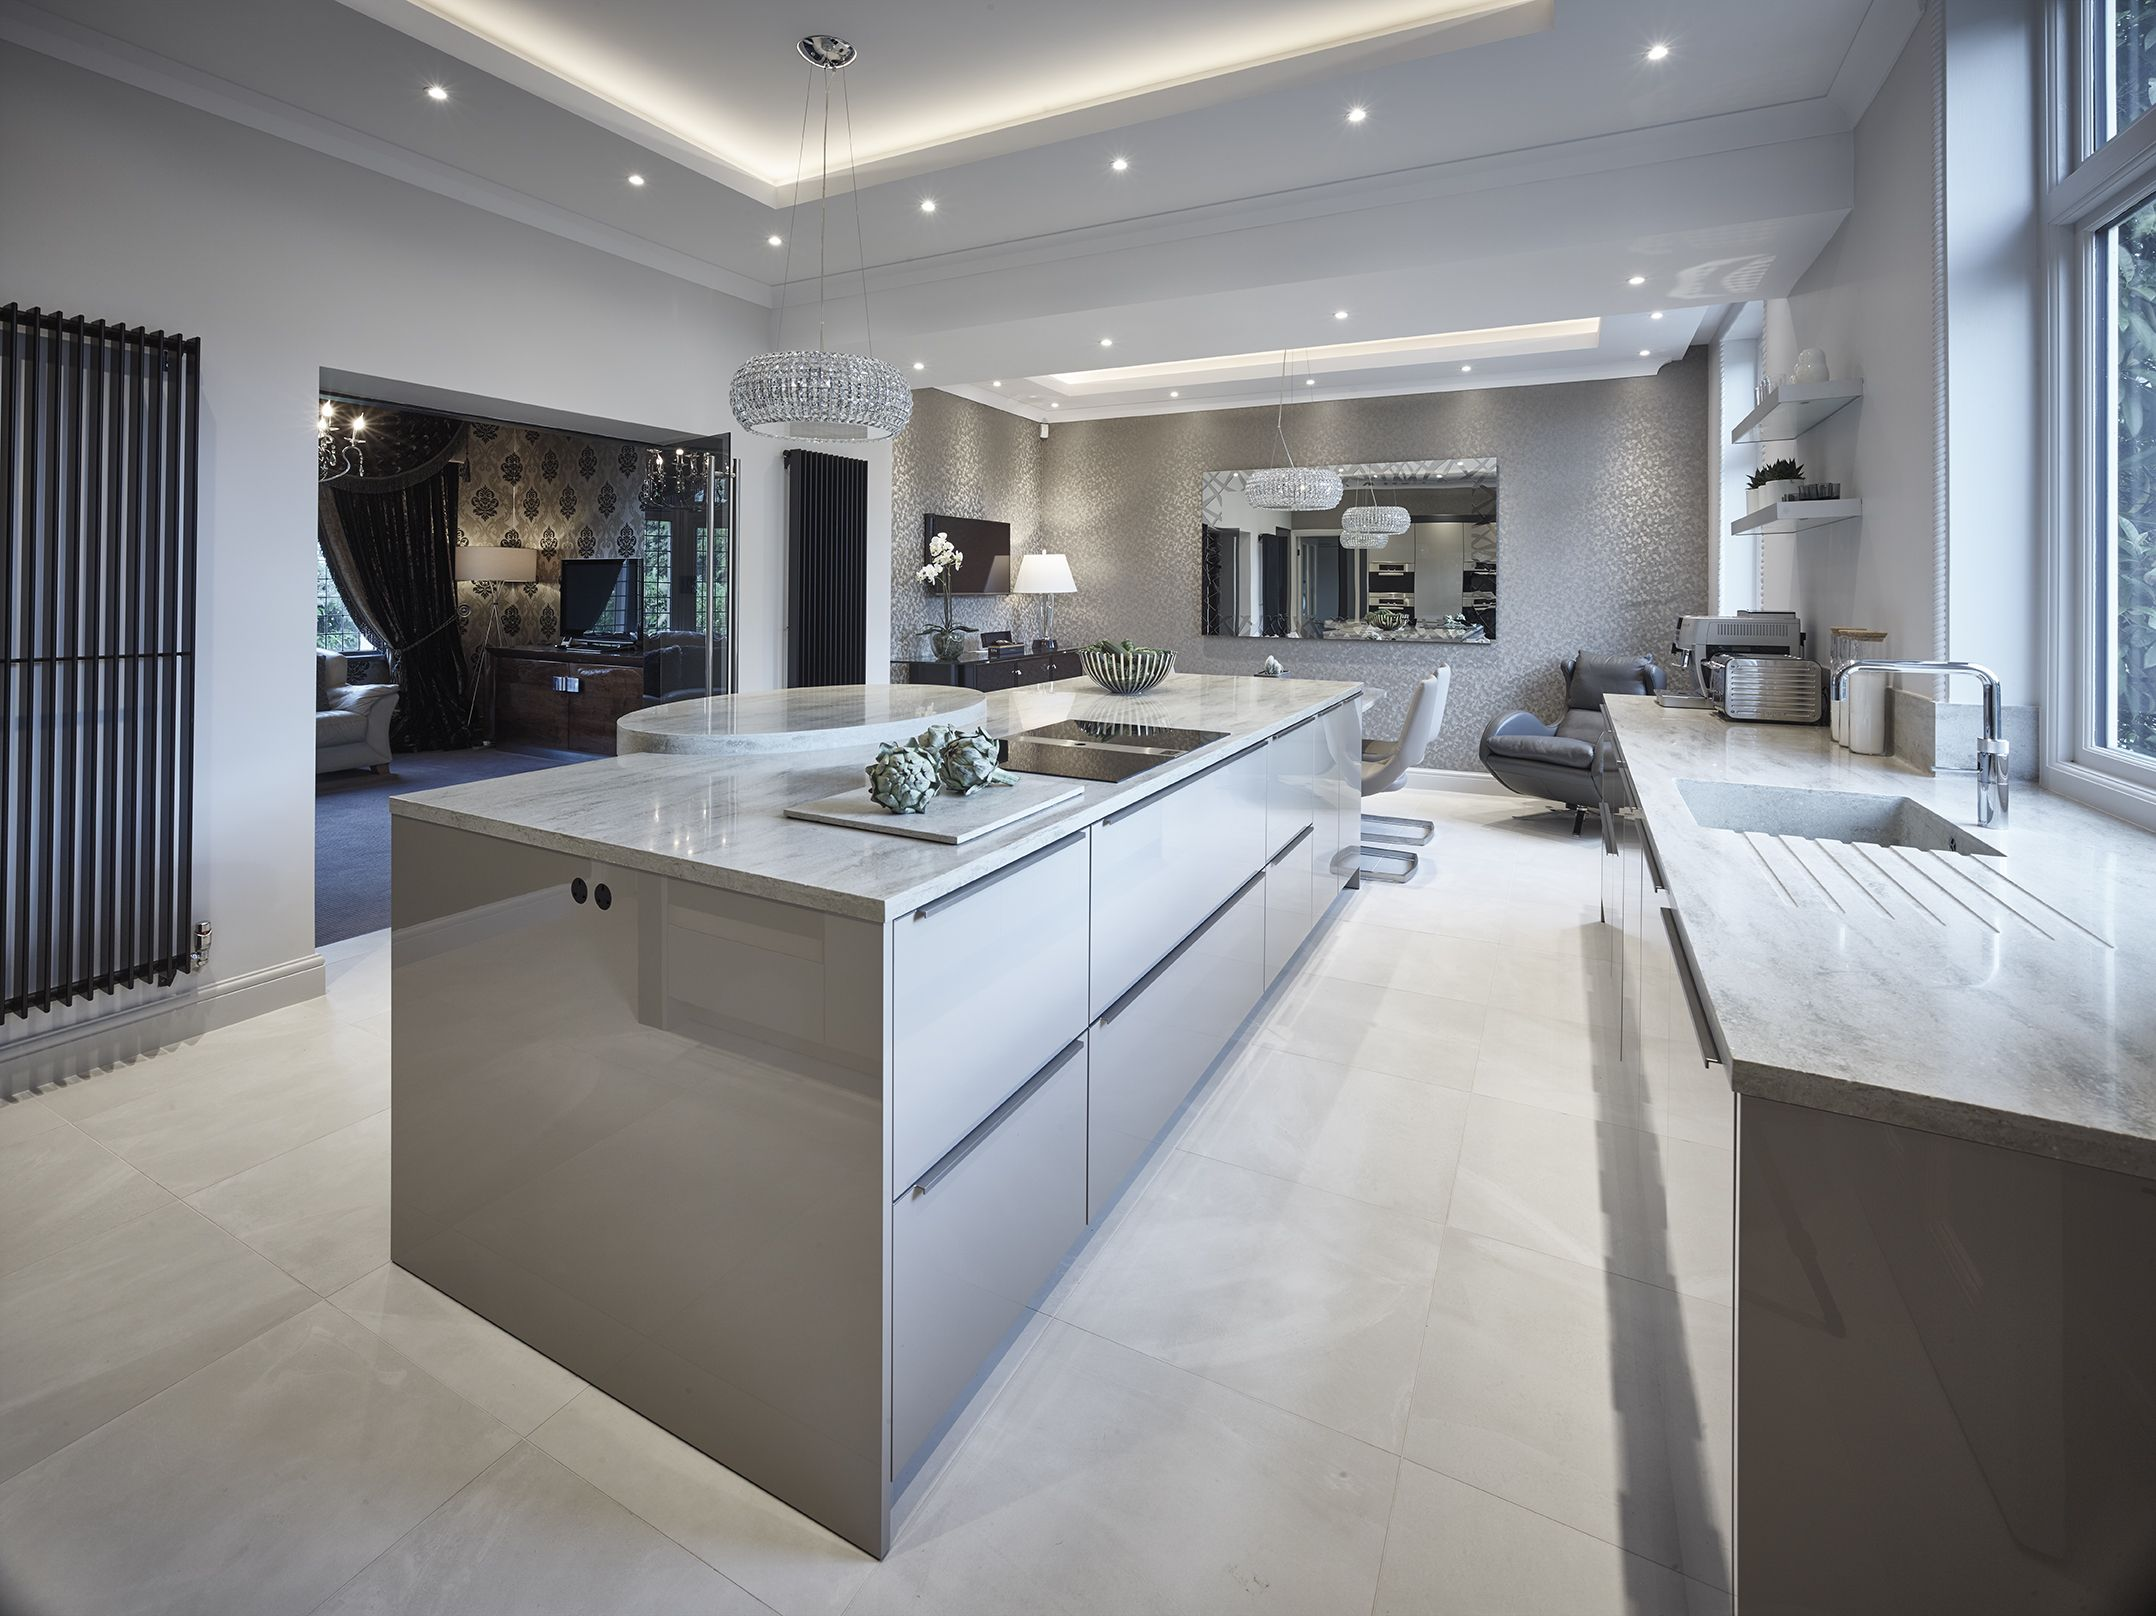 Siematic Classic Sc40 Kitchen In Agate Grey Gloss Finish Corian Sagebrush Worktops And Dining Table Luxury Kitchens Kitchen Inspirations Luxury Kitchen Design